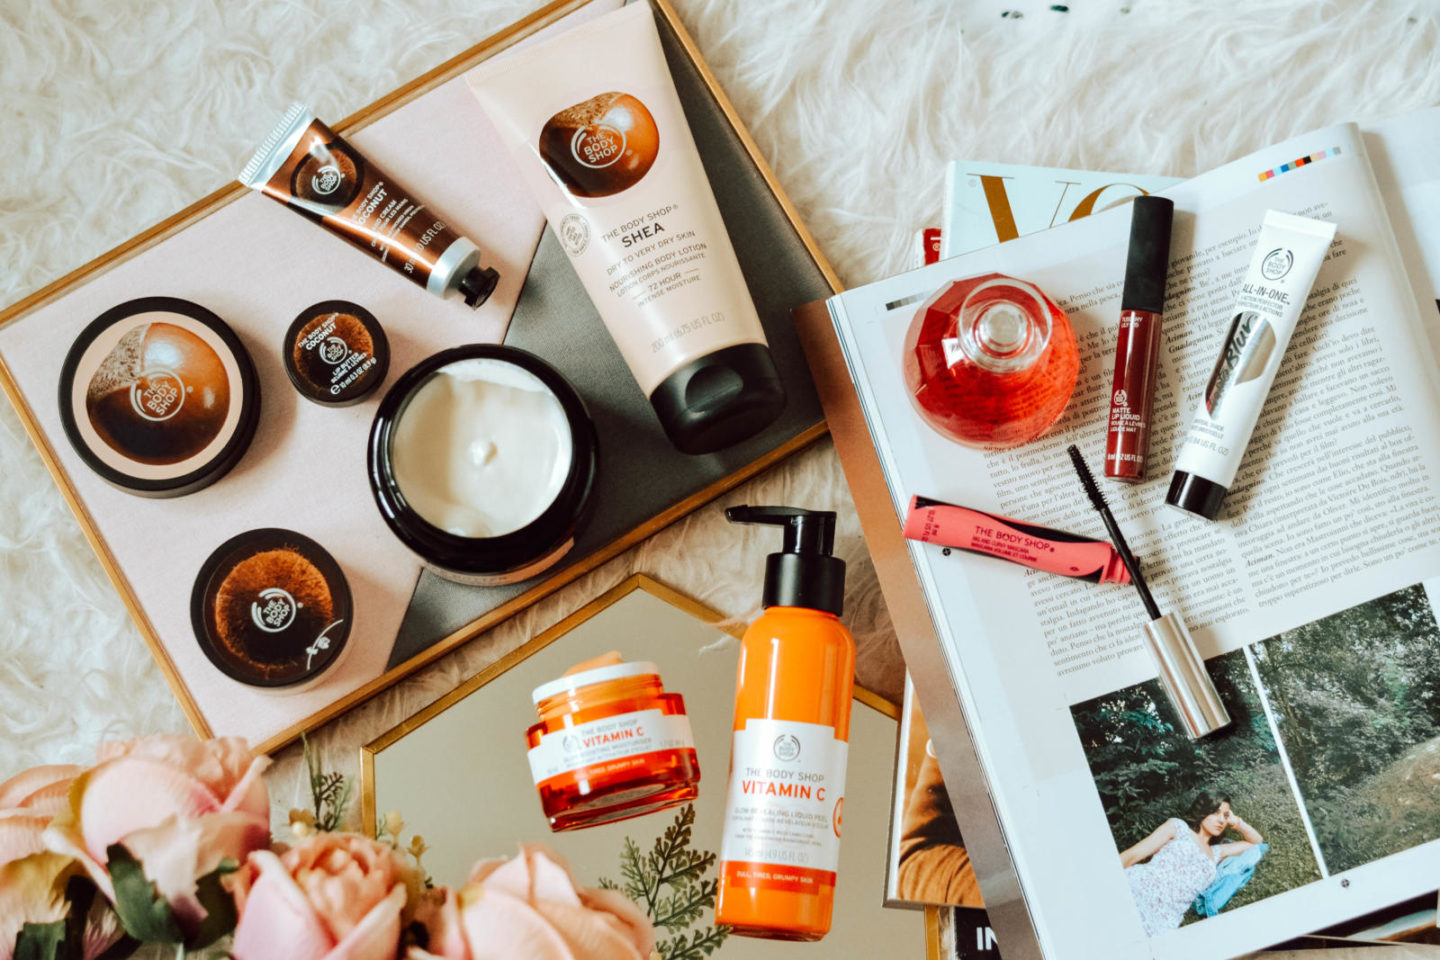 My huge cruelty-free The Body Shop haul